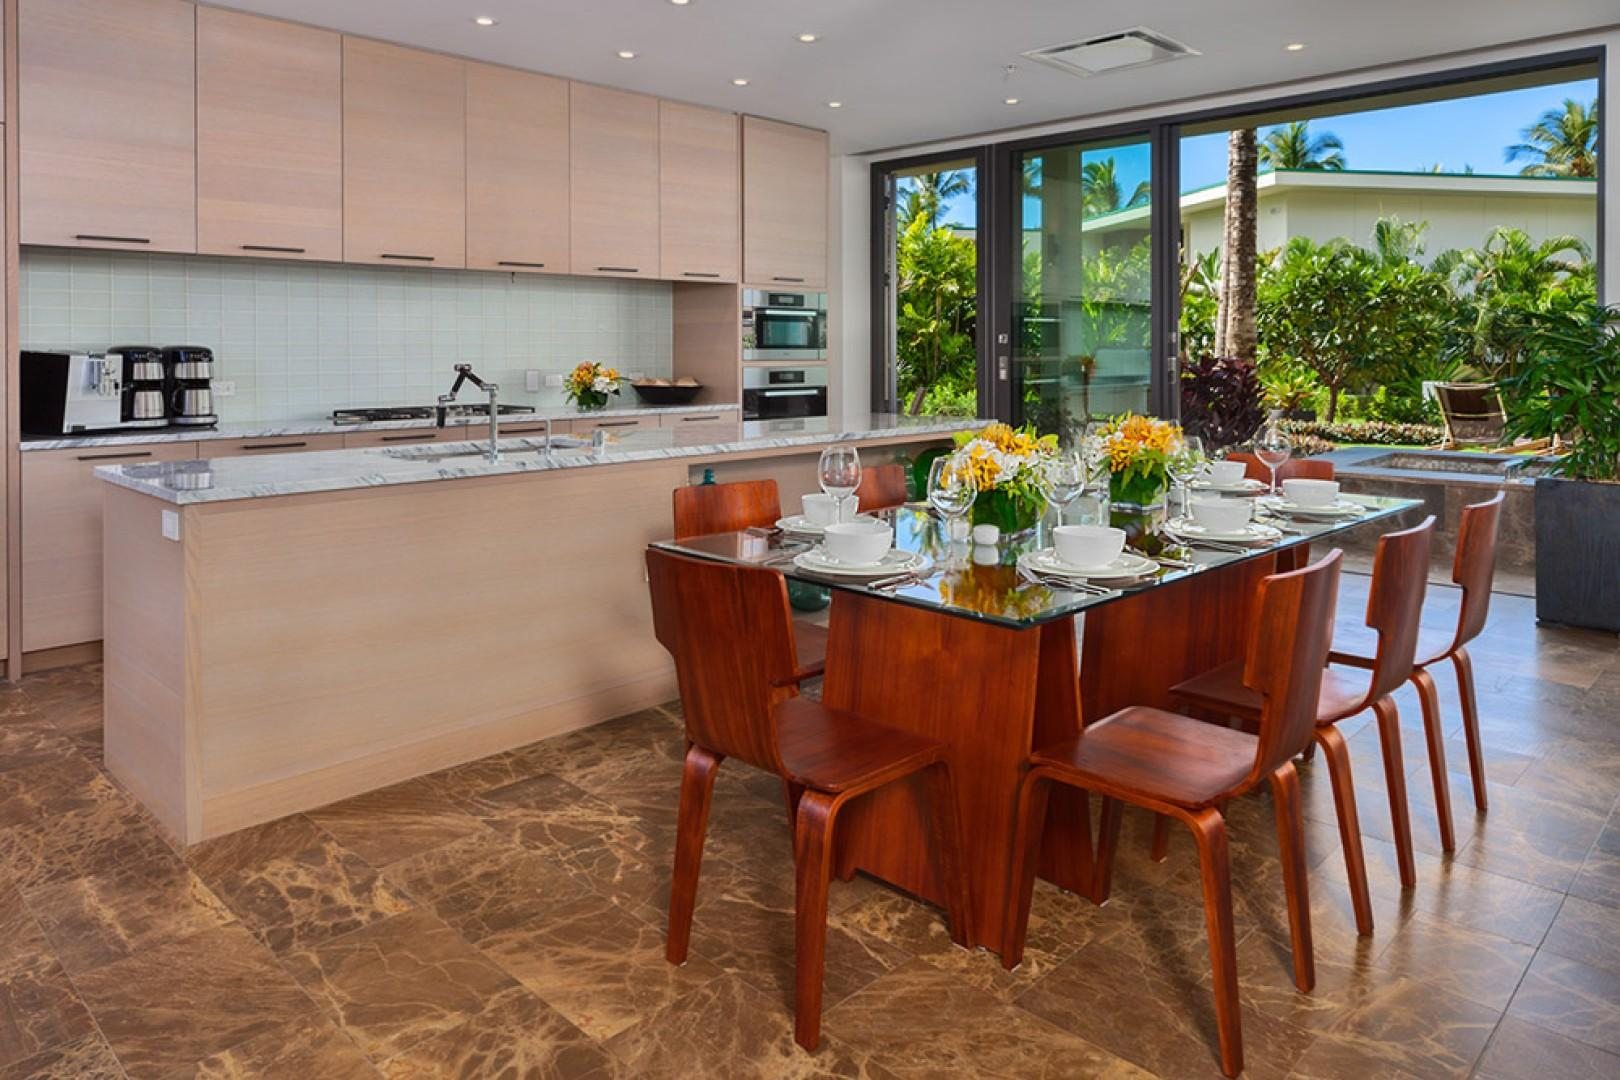 SeaGlass Villa 810 at Andaz Maui Wailea Resort - Create Maui Inspired Culinary Masterpieces in the Meile Equipped Gourmet Kitchen with Indoor Dining for Eight